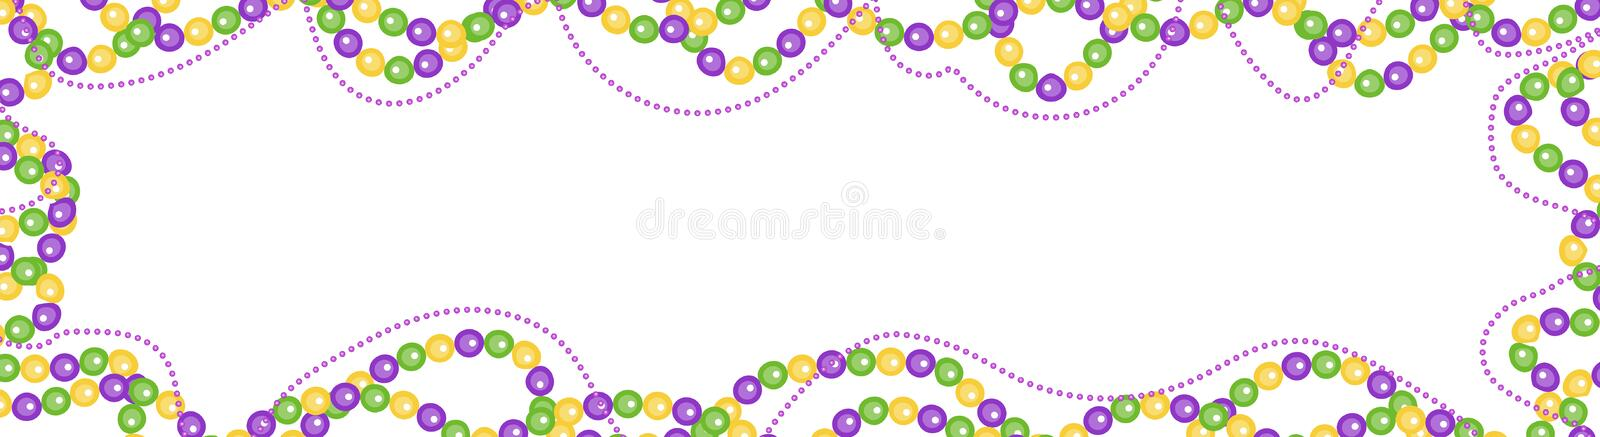 Mardi Gras beads colored frame, isolated on white background. Horizontal banner, border. Template for your design. Vector illustration royalty free illustration